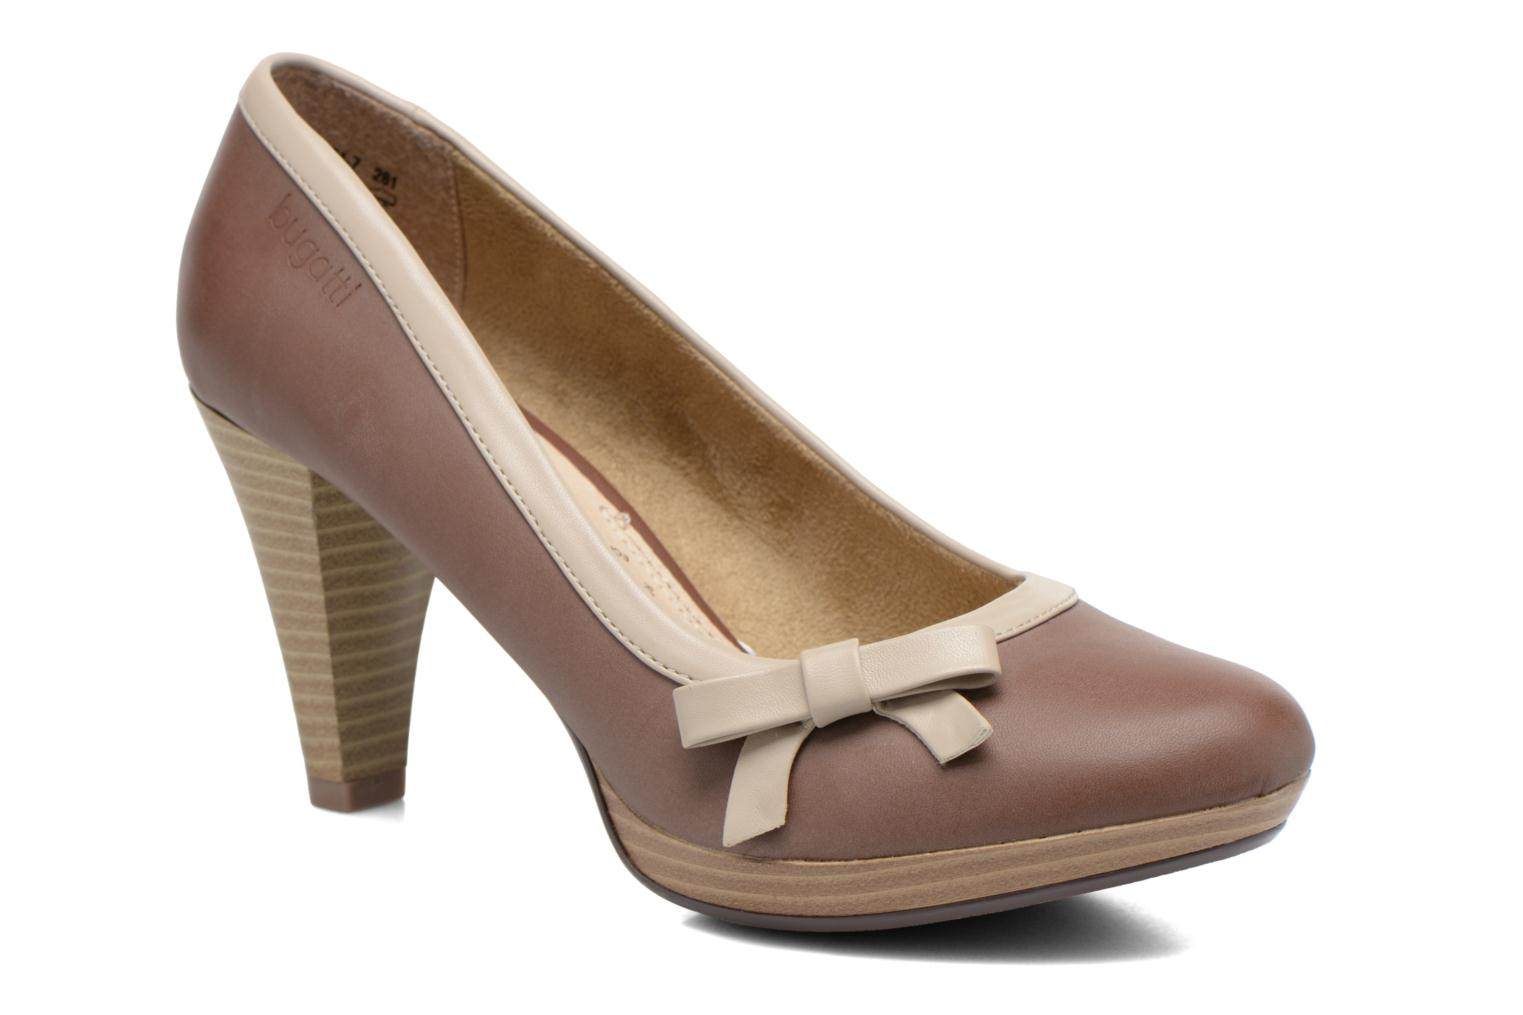 Isabella W6661-7 Sand/Taupe